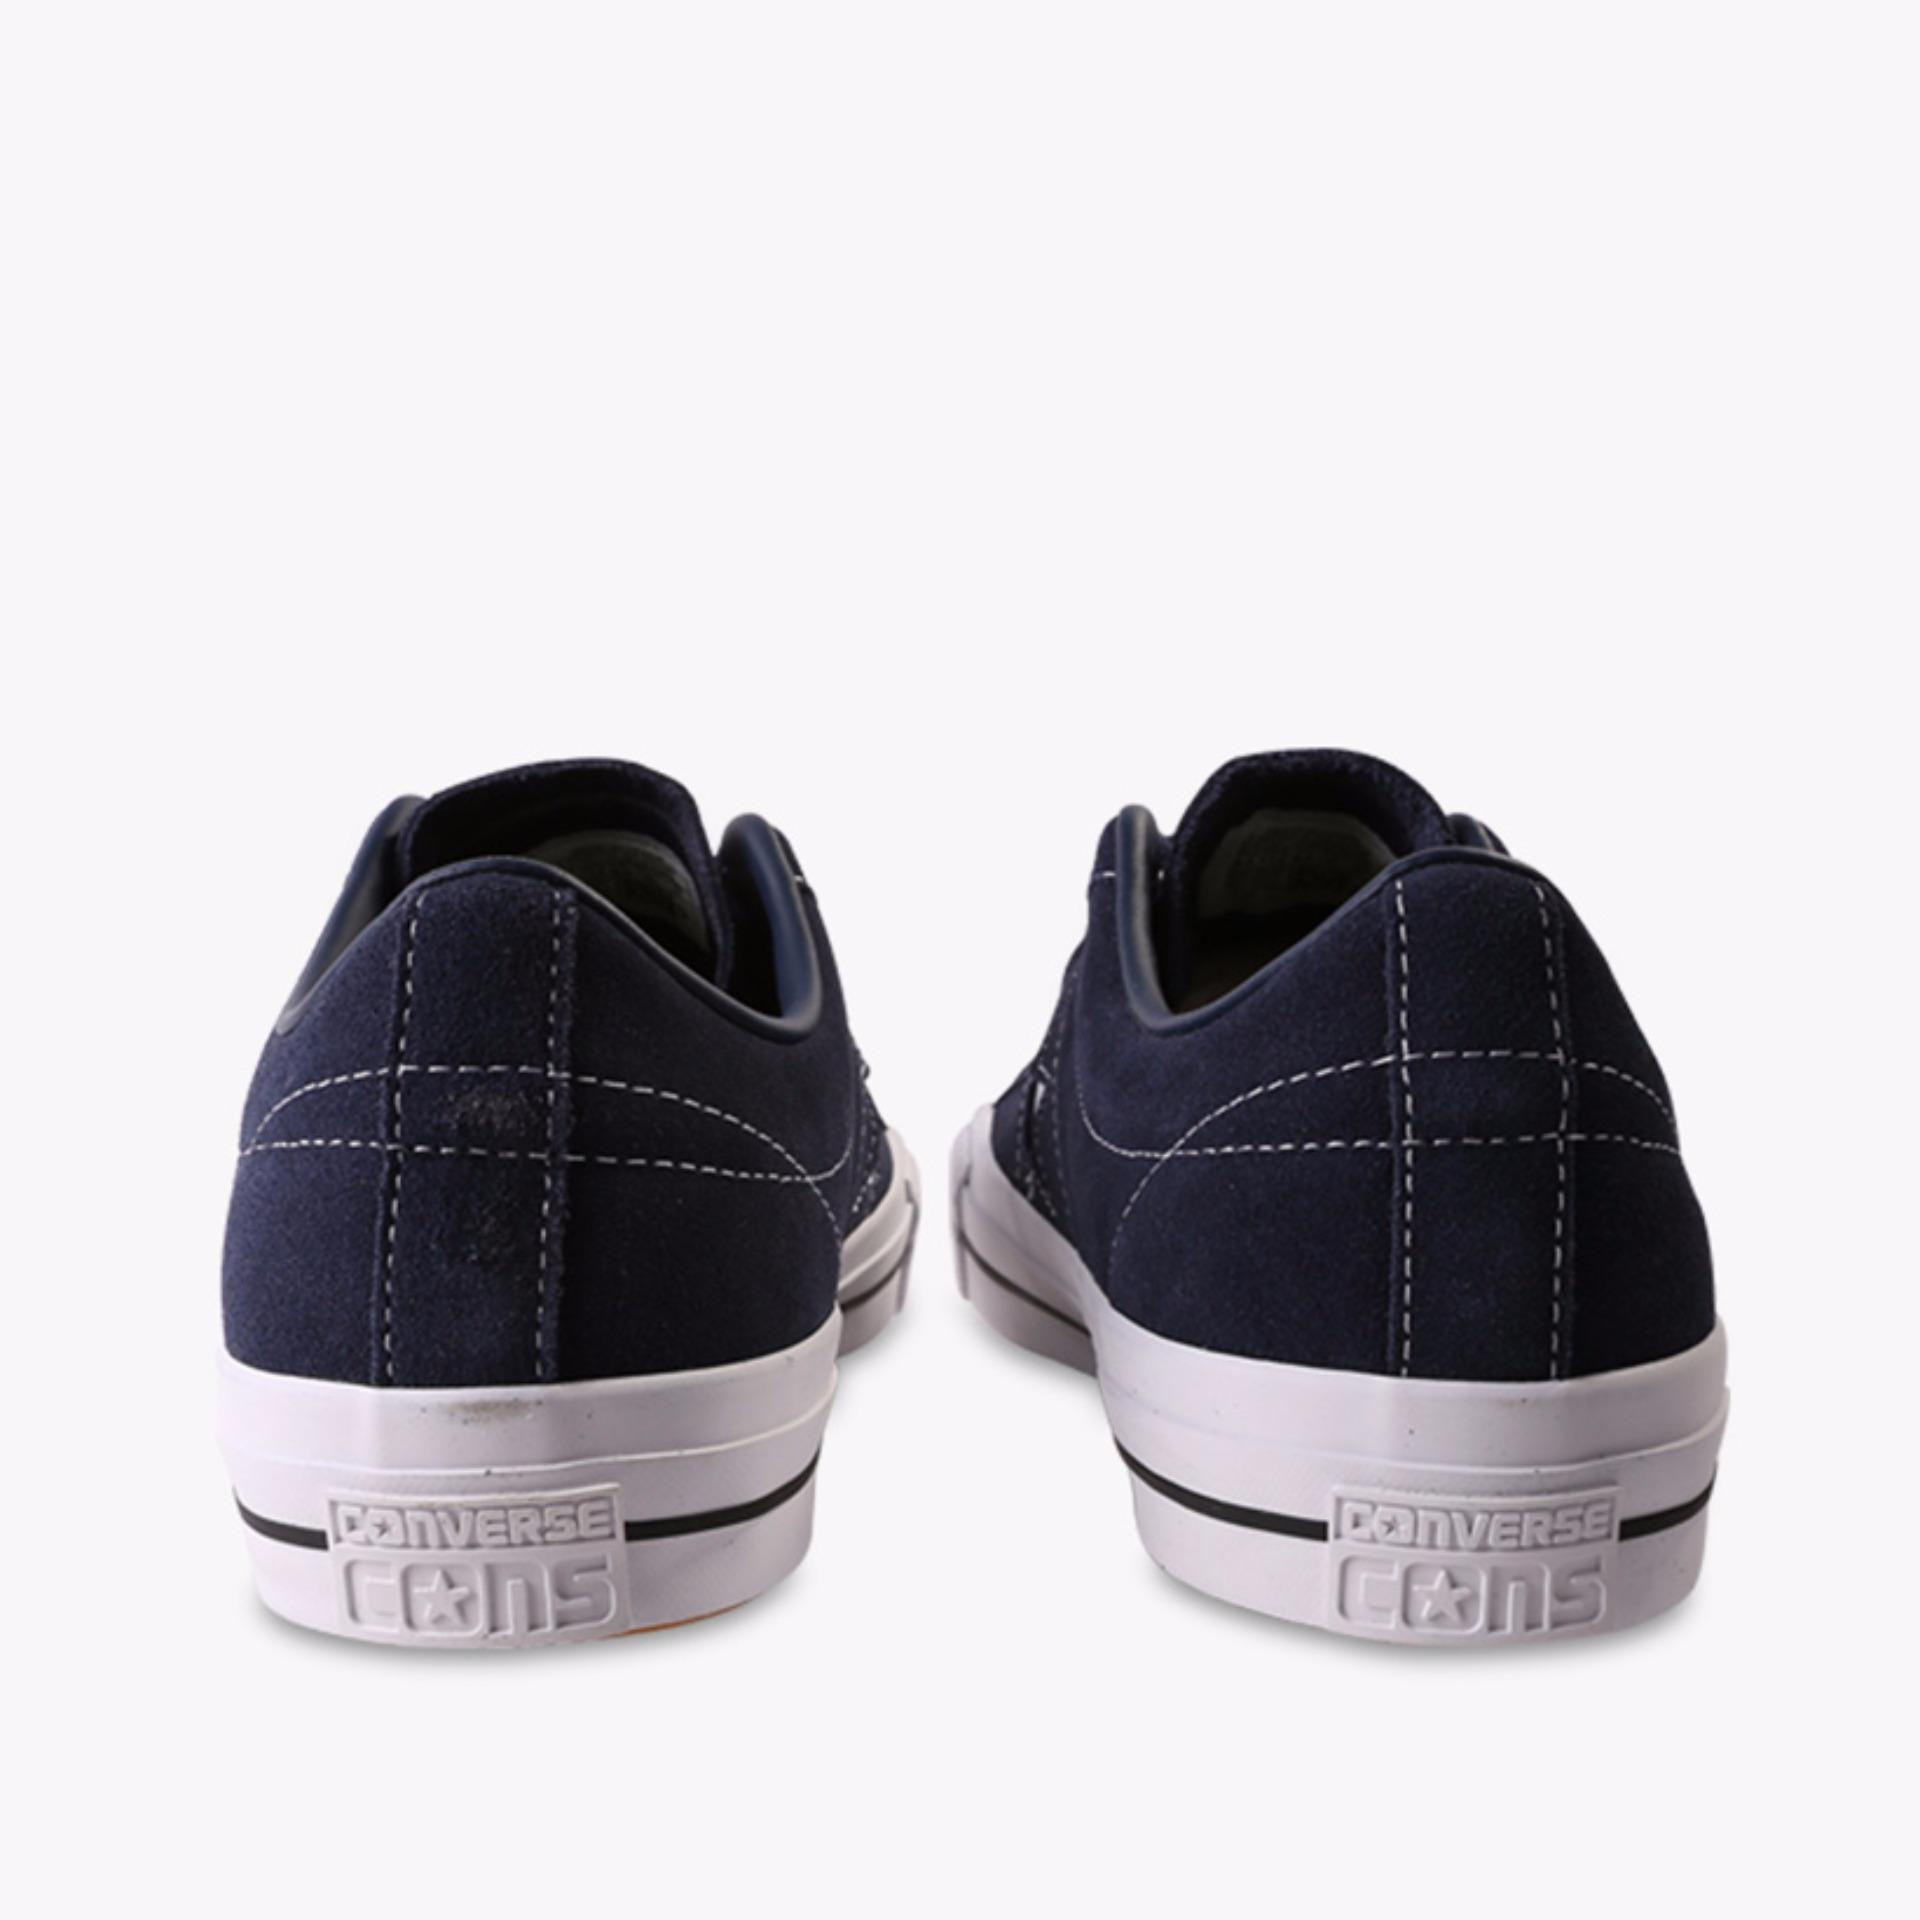 ... Converse One Star Pro Ox Men's Sneakers Shoes - Navy ...